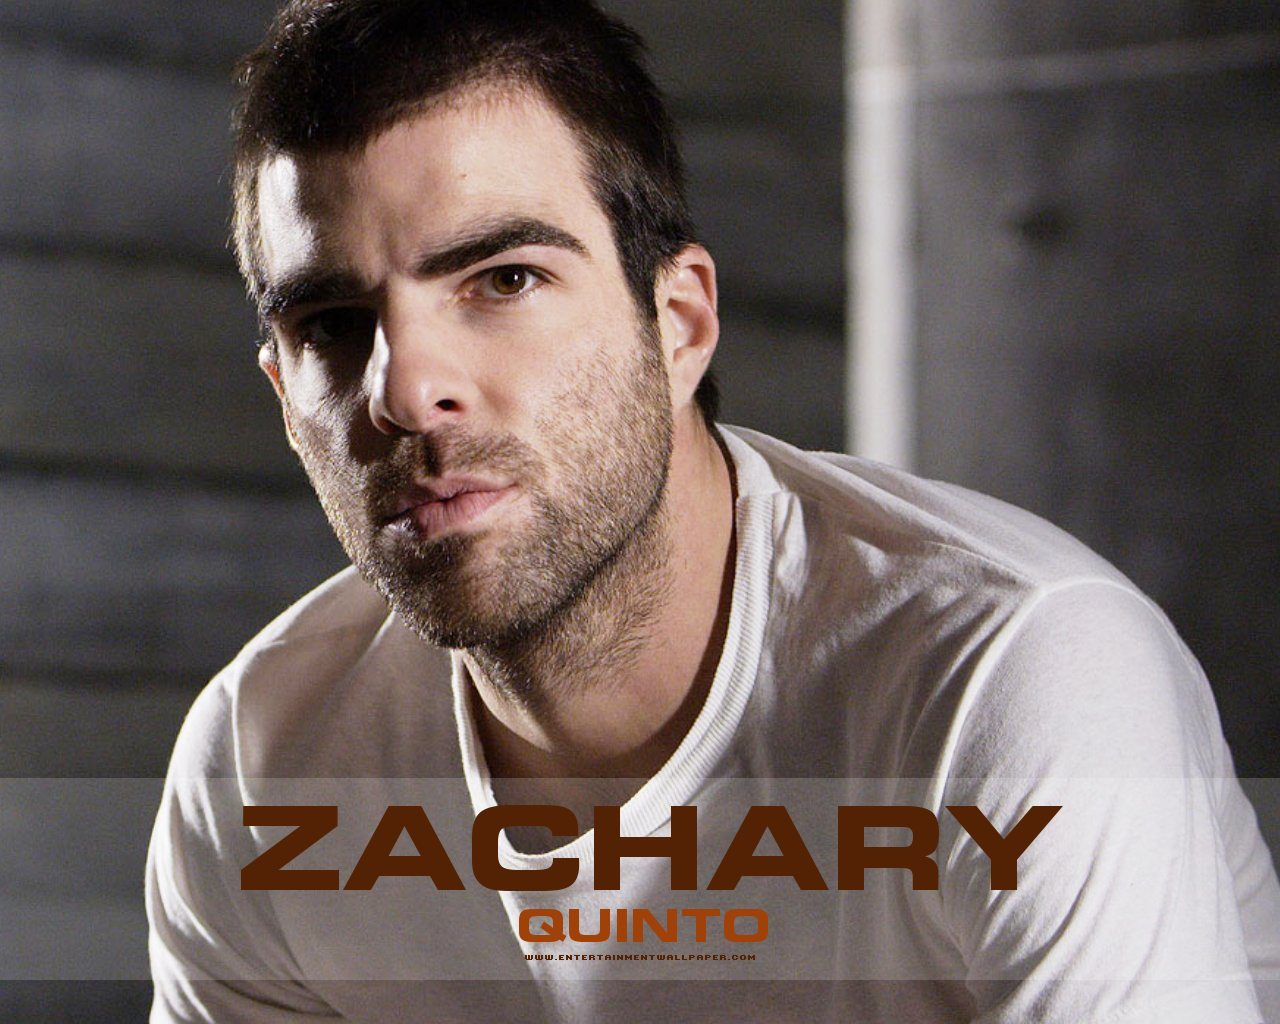 Zachary Quinto Wallpapers Images Photos Pictures Backgrounds 1280x1024